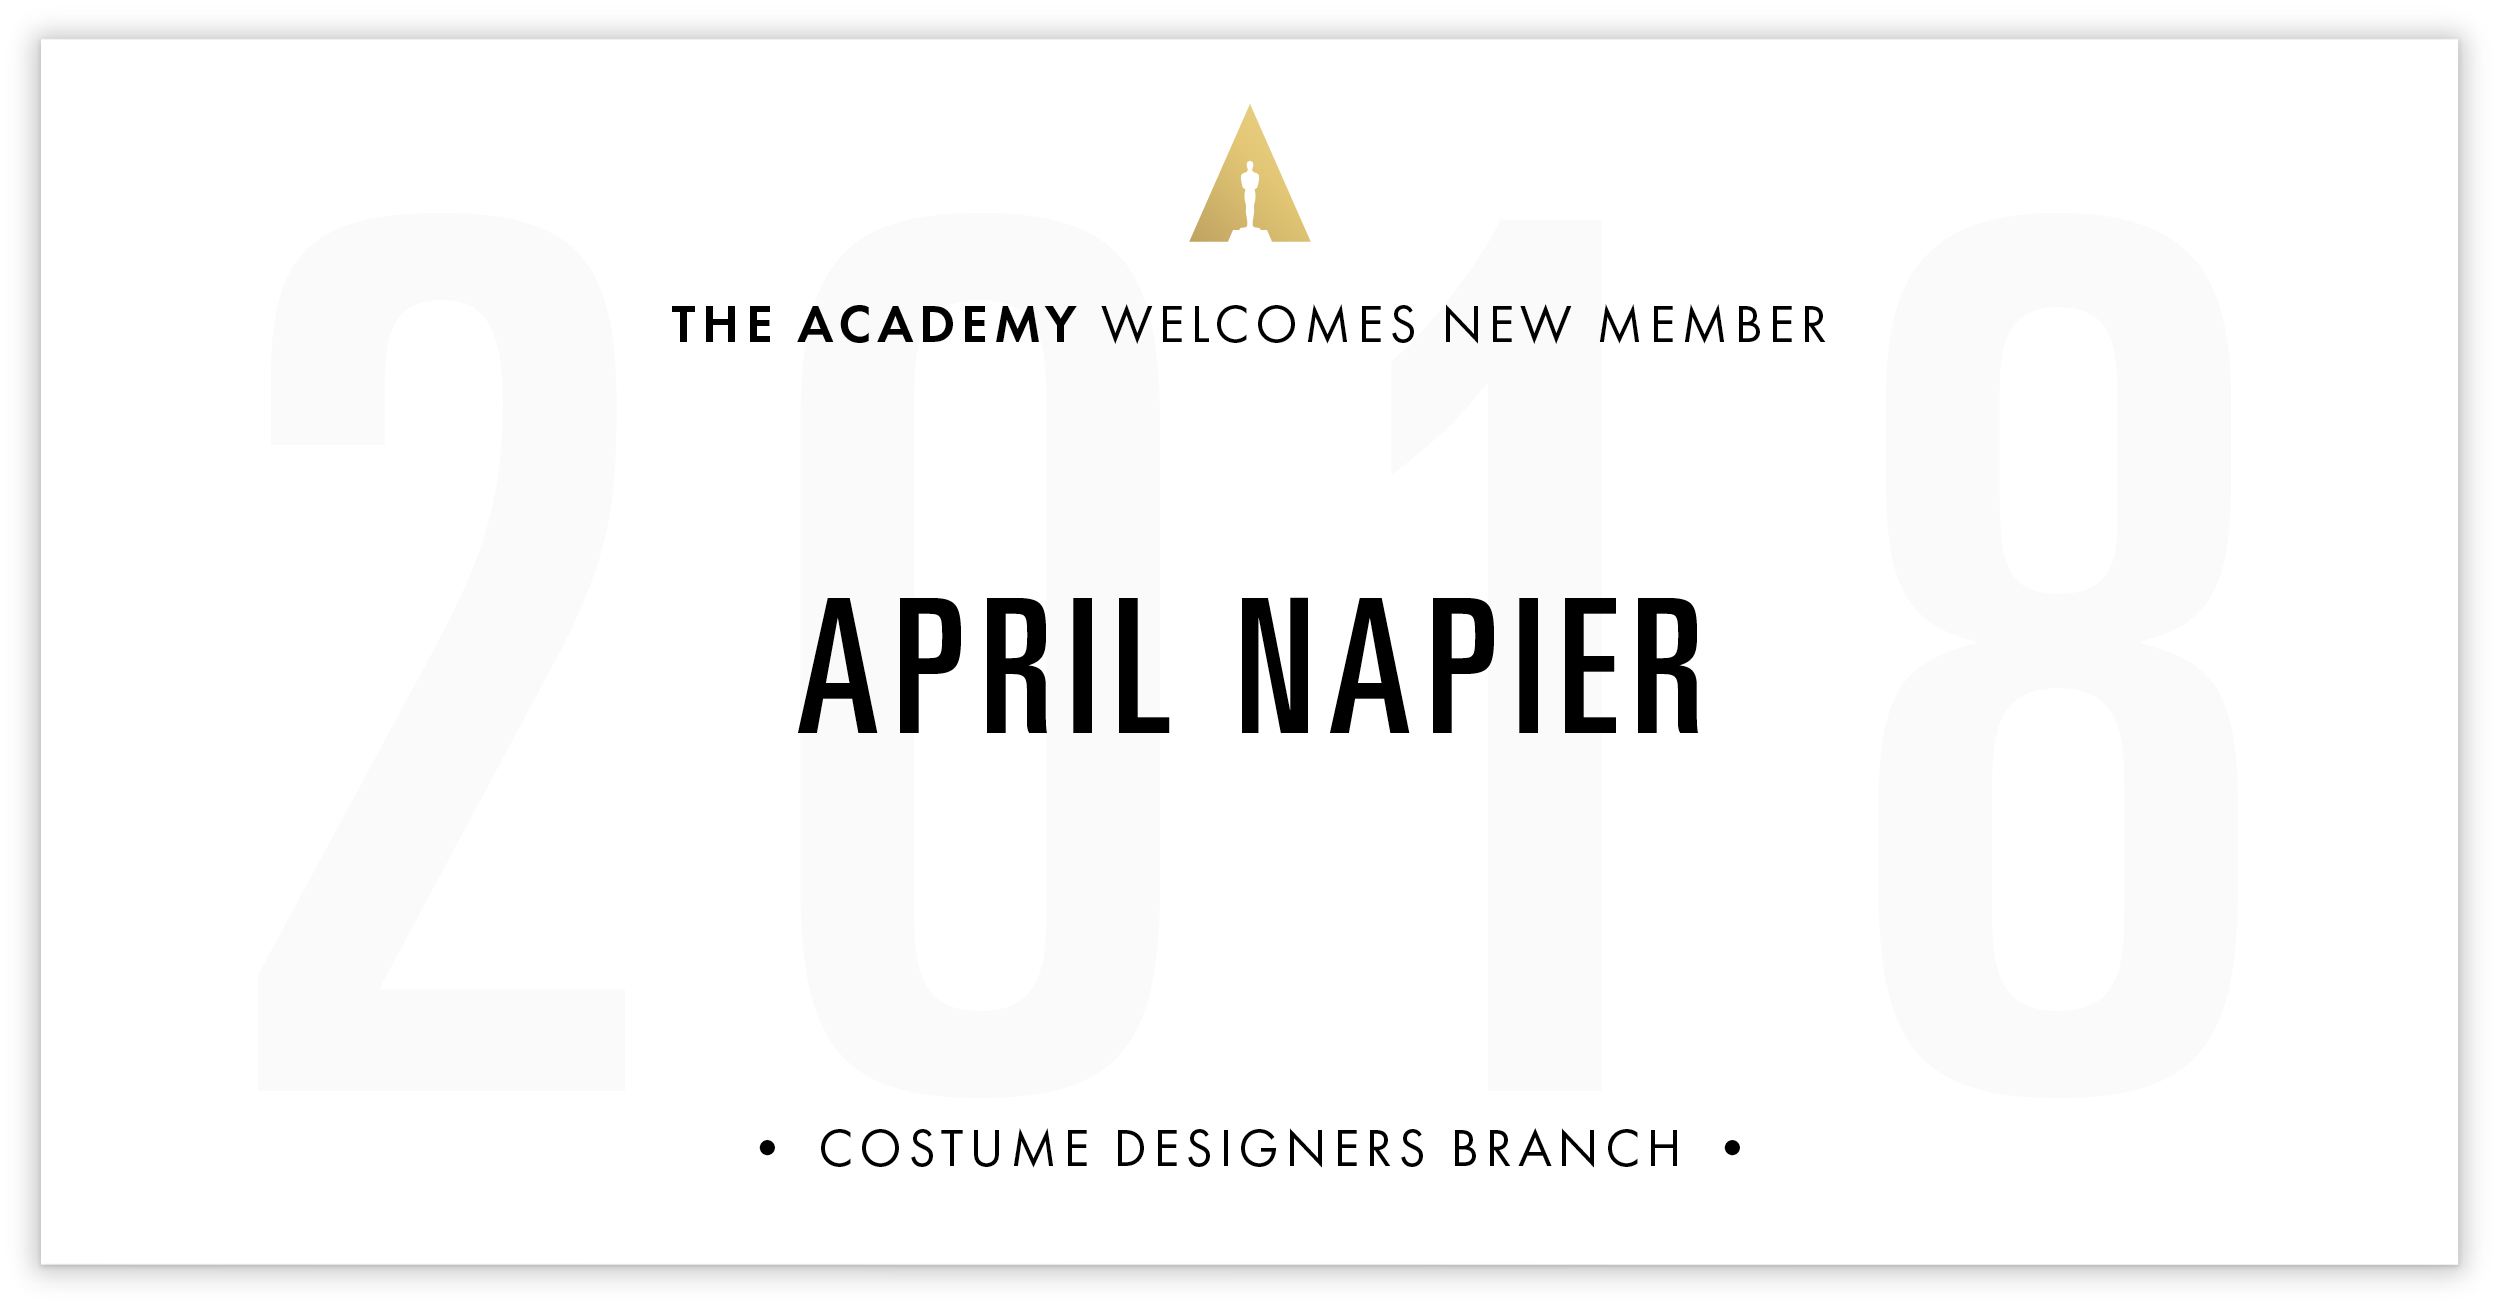 April Napier is invited!